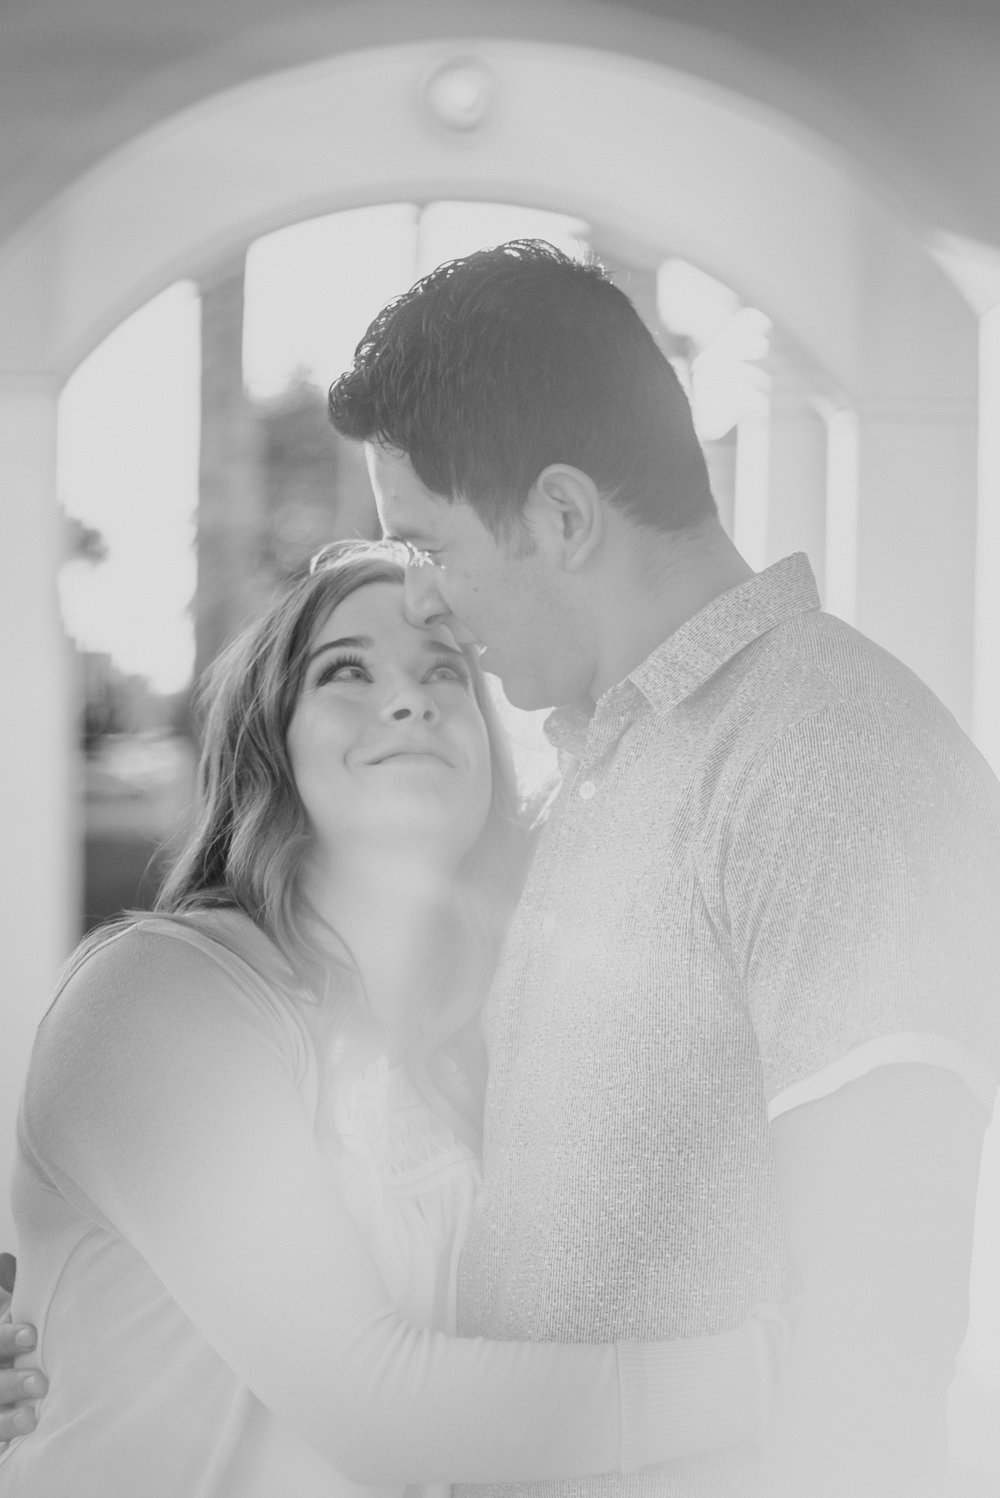 wedding-engagement-photos-chandler-az-8.jpg